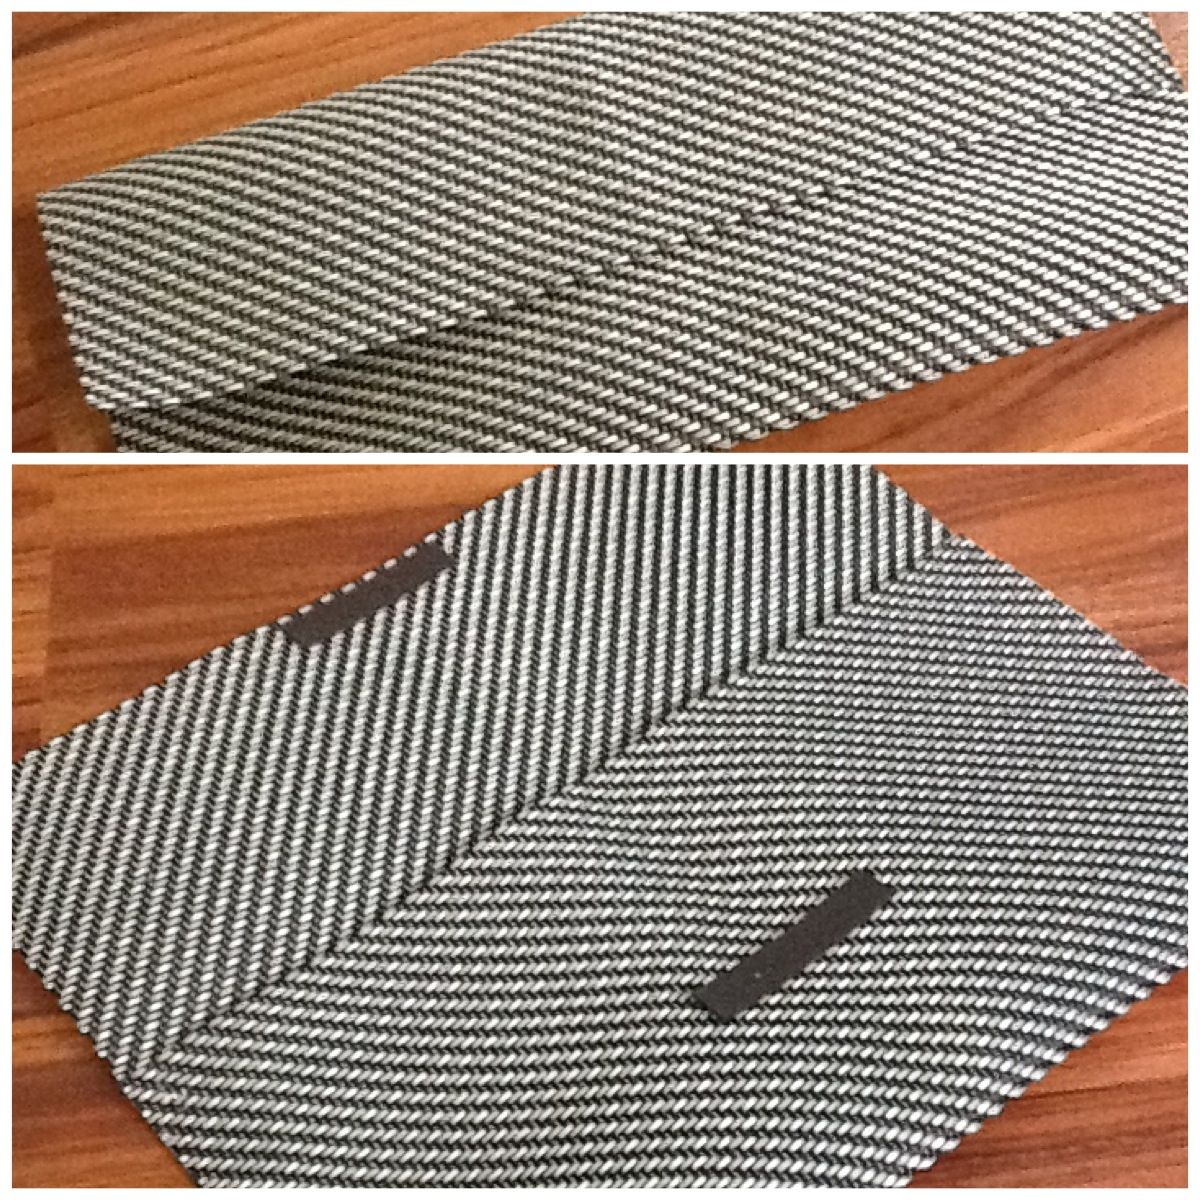 Made this cute clutch out of placemat...fold the mat with about 4 inches for the flap, hot glue or tacky glue the edges, add magnets or snaps, etc to close...voila! Cheap cute clutch